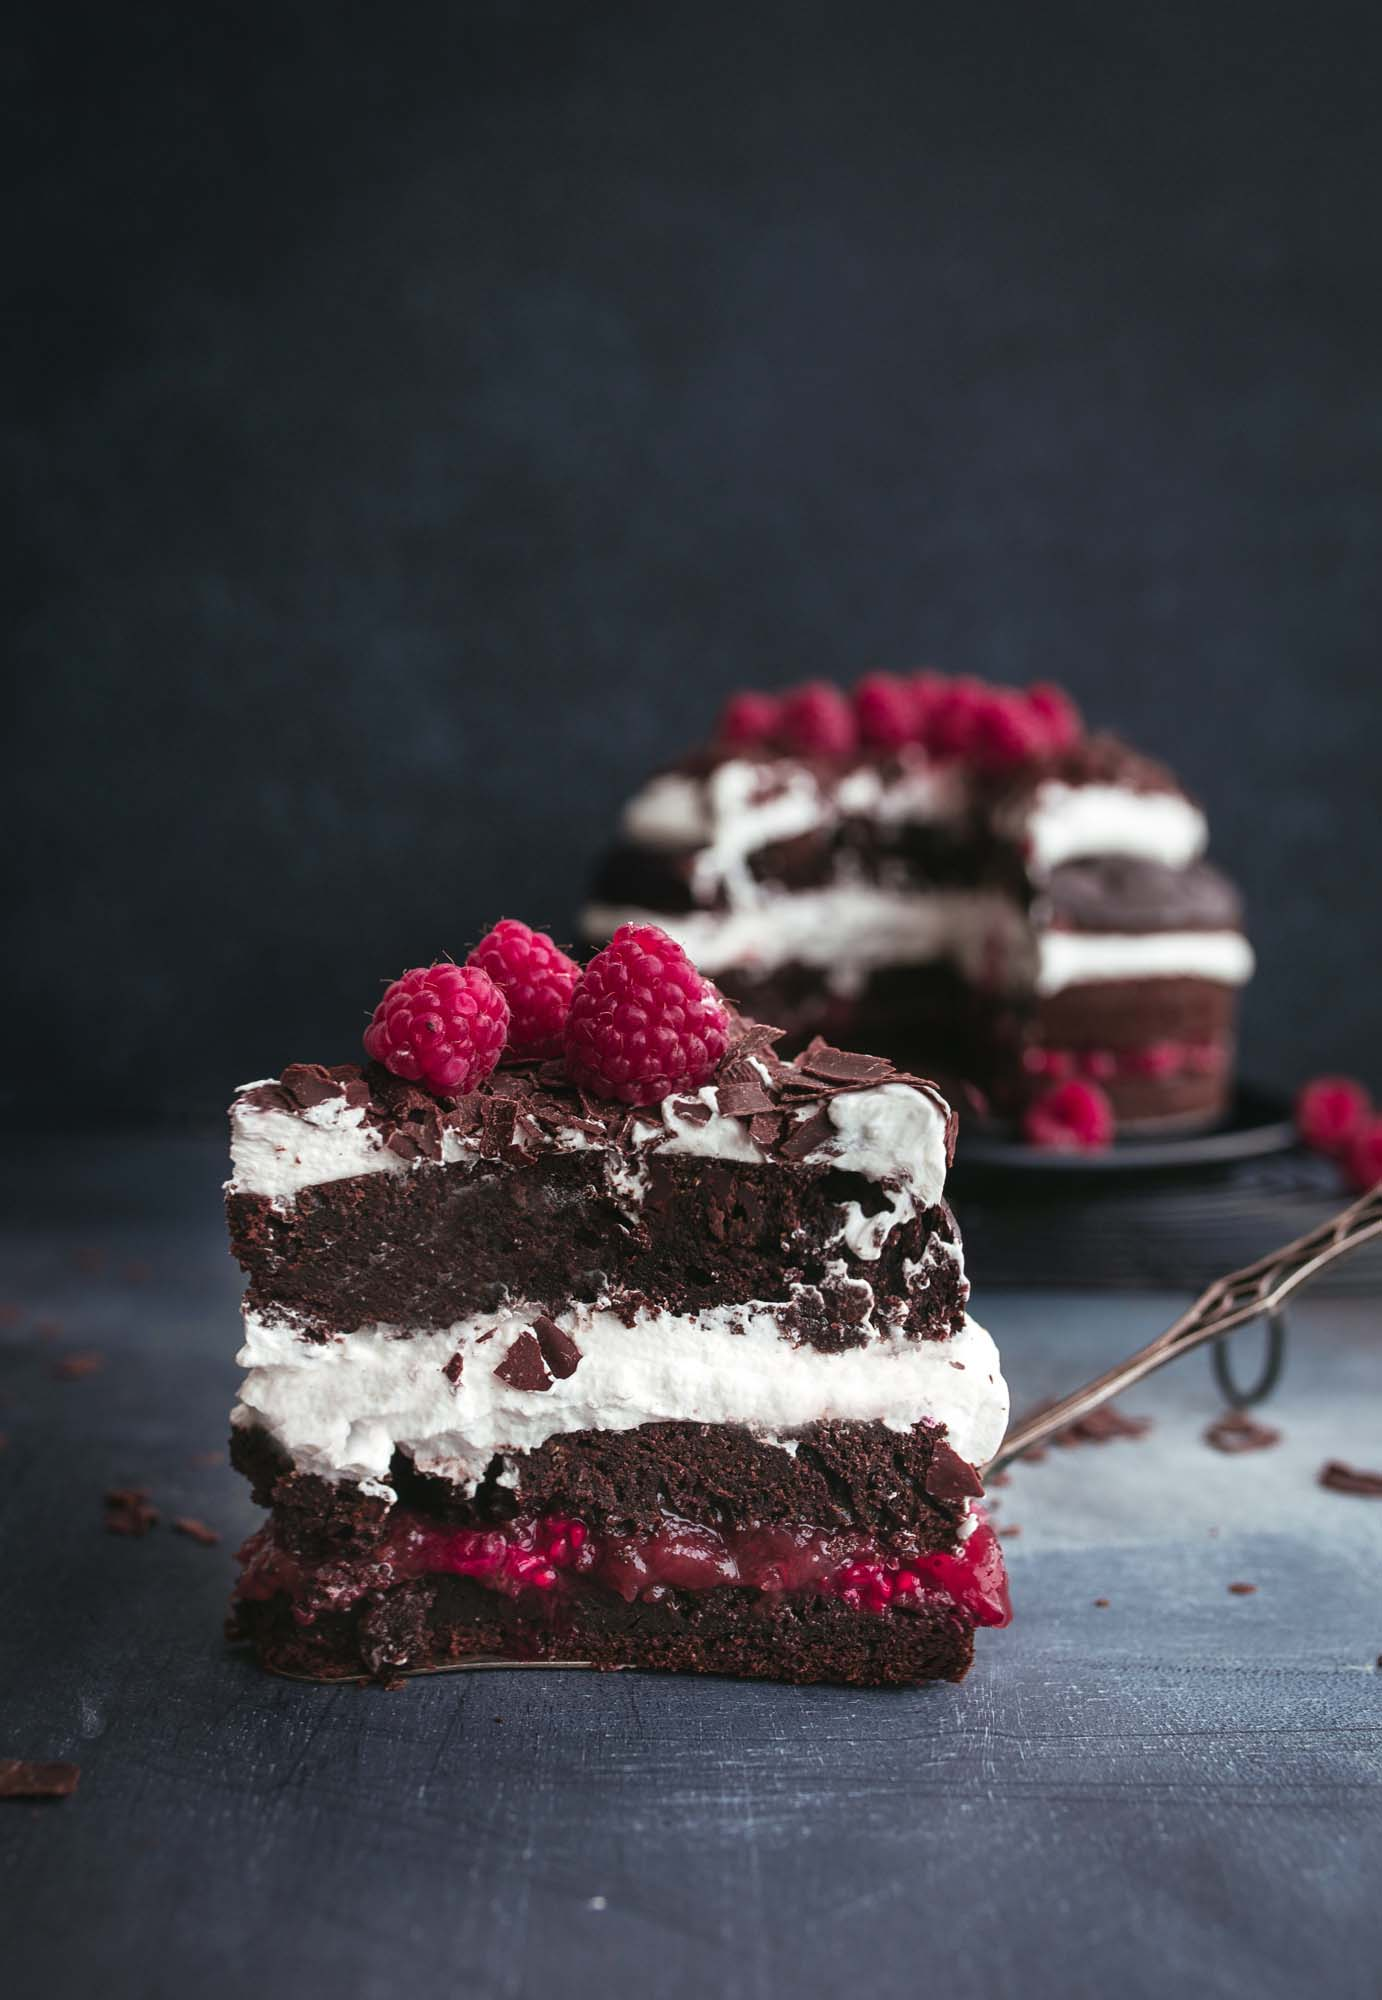 Vegan Black Forest Cake with Raspberries